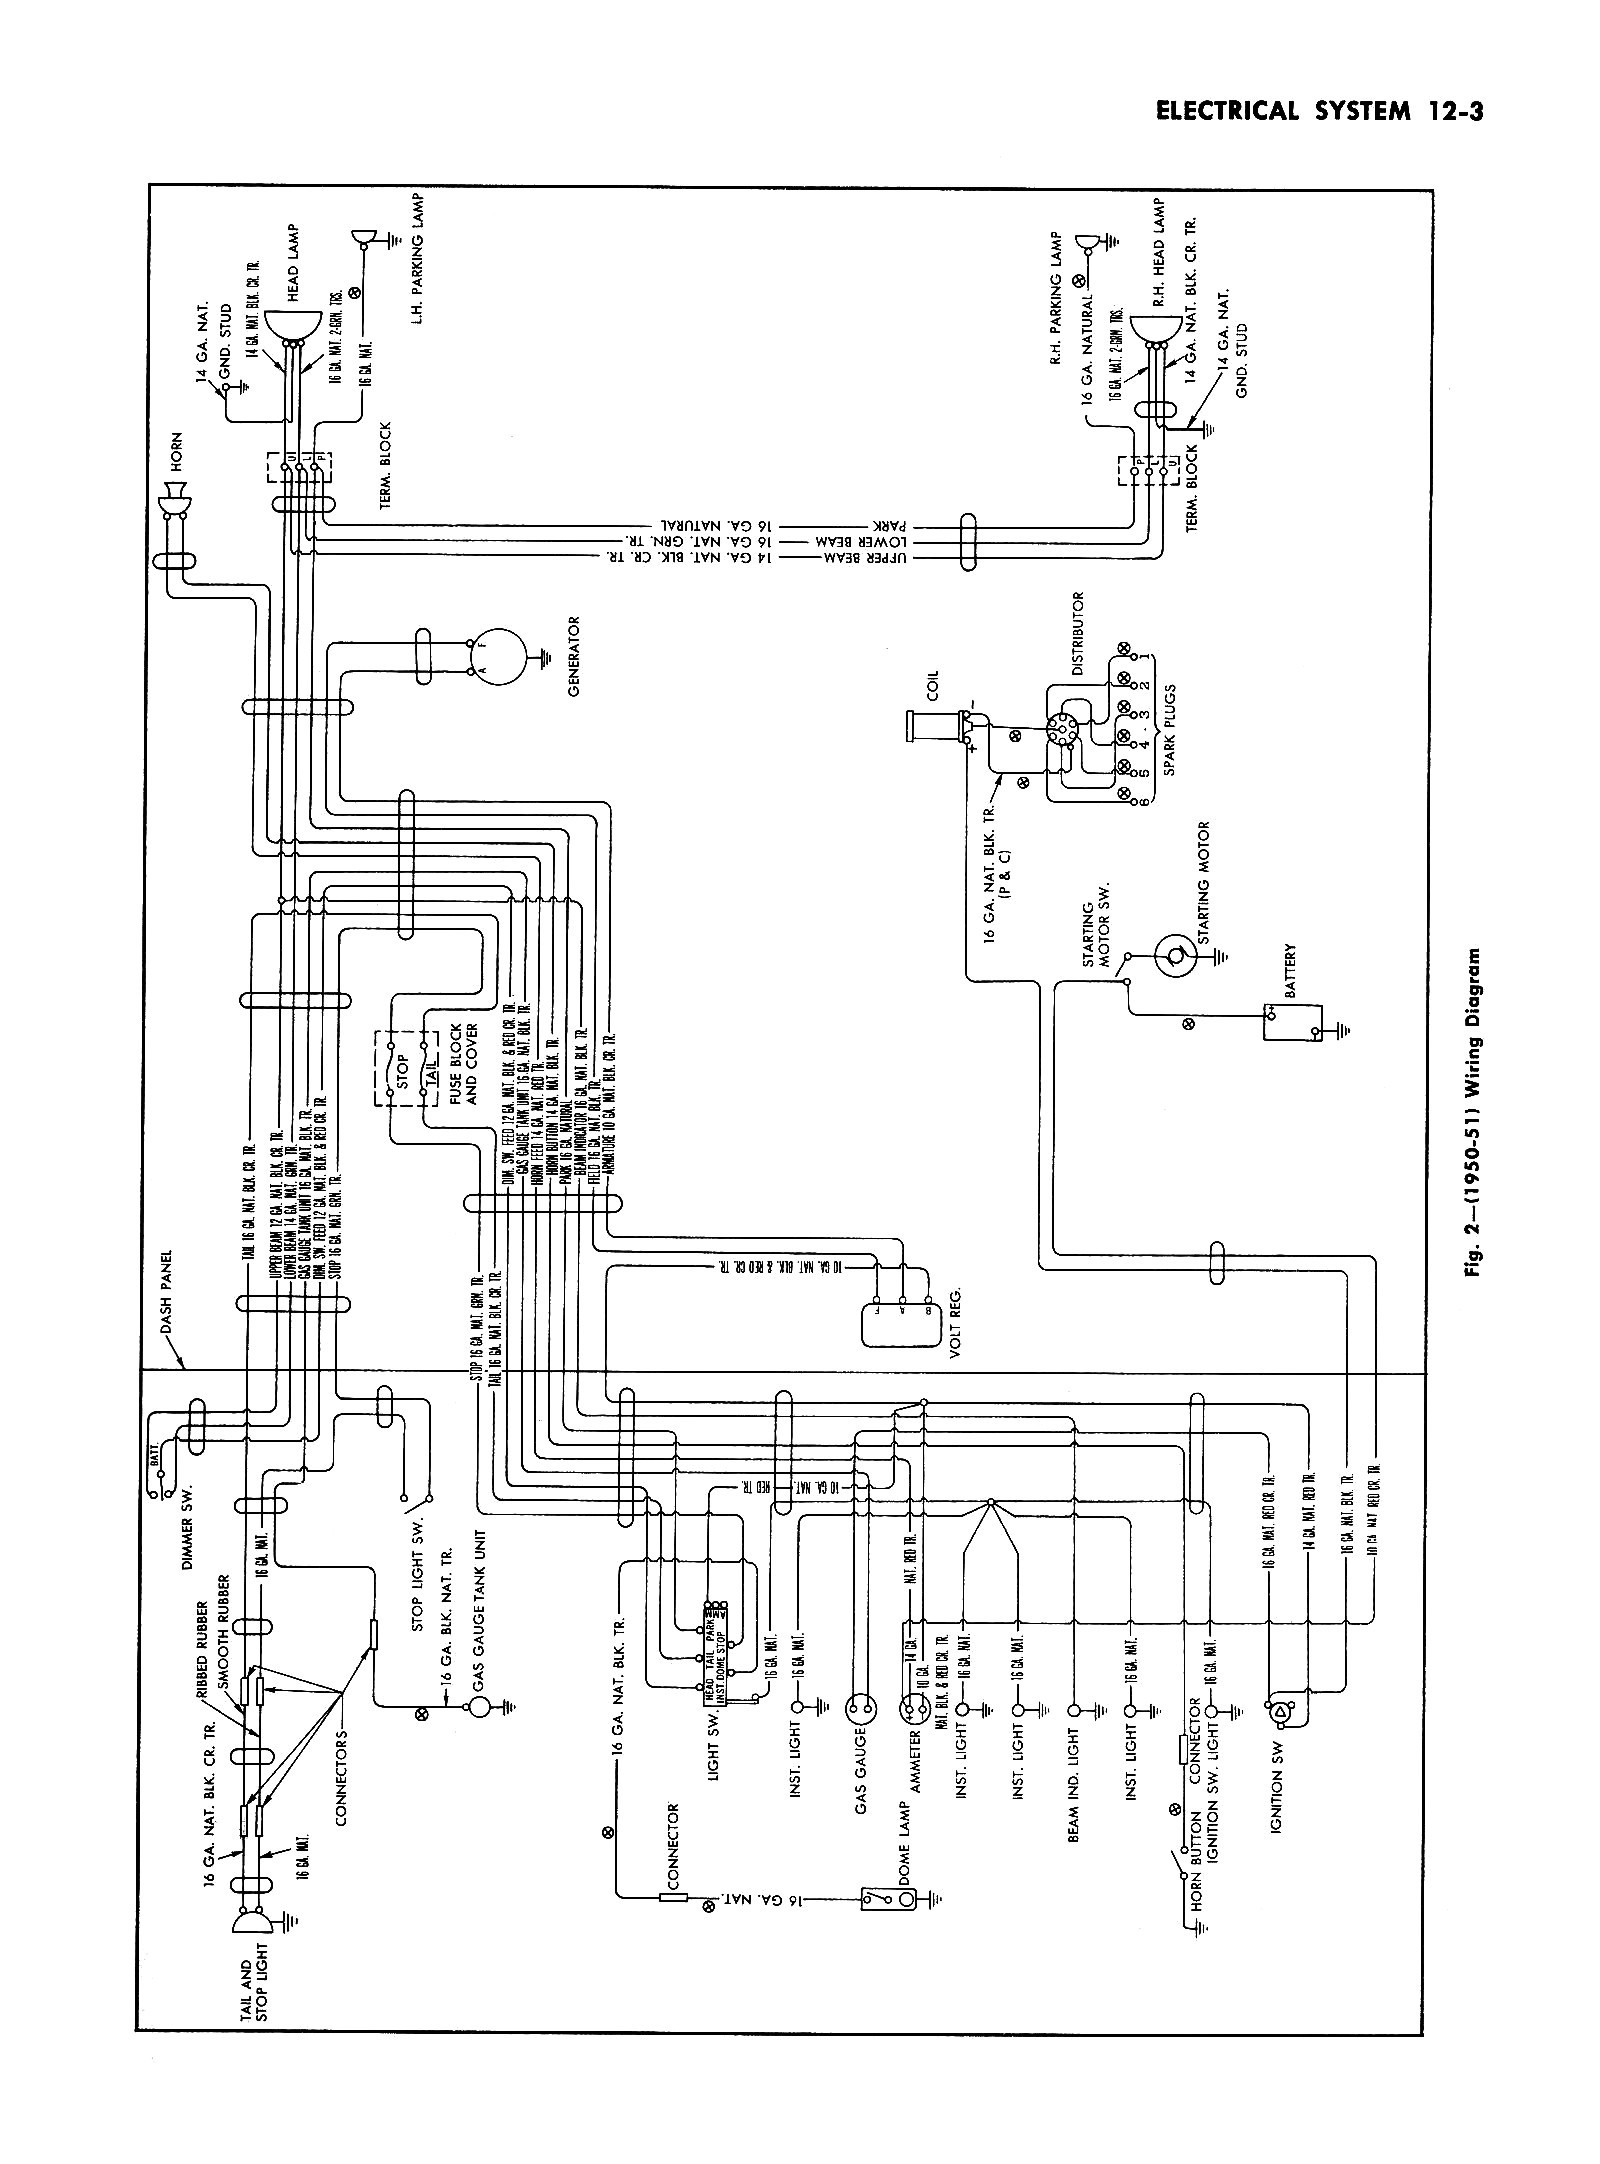 1959 chevy truck wiring diagram